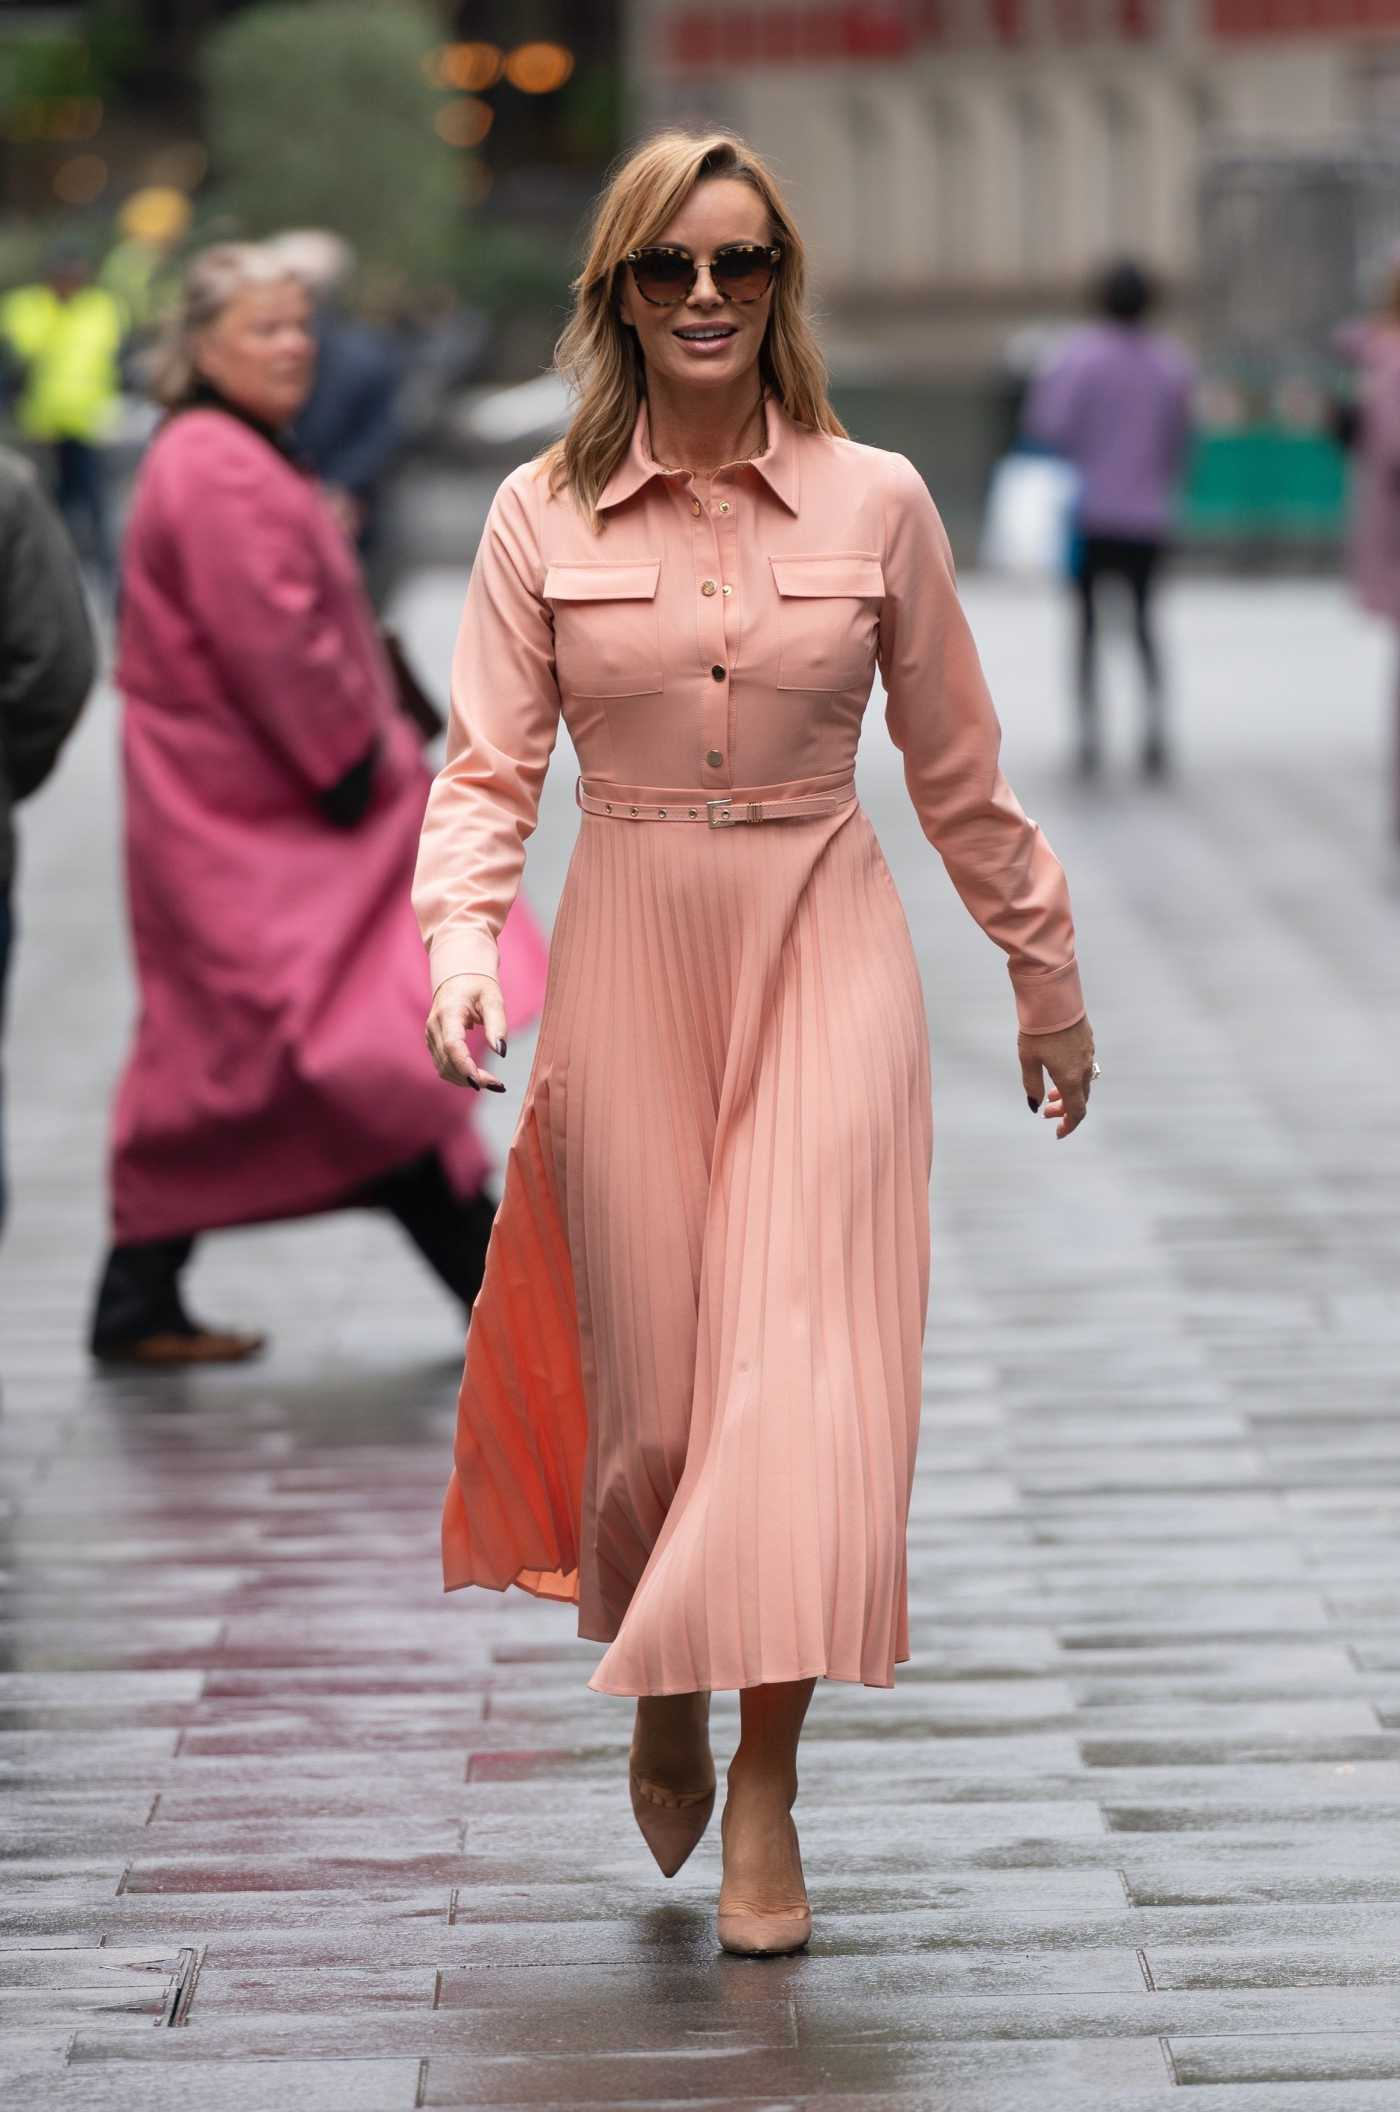 Amanda Holden in a Pink Dress Was Seen Out in London 10/06/2020